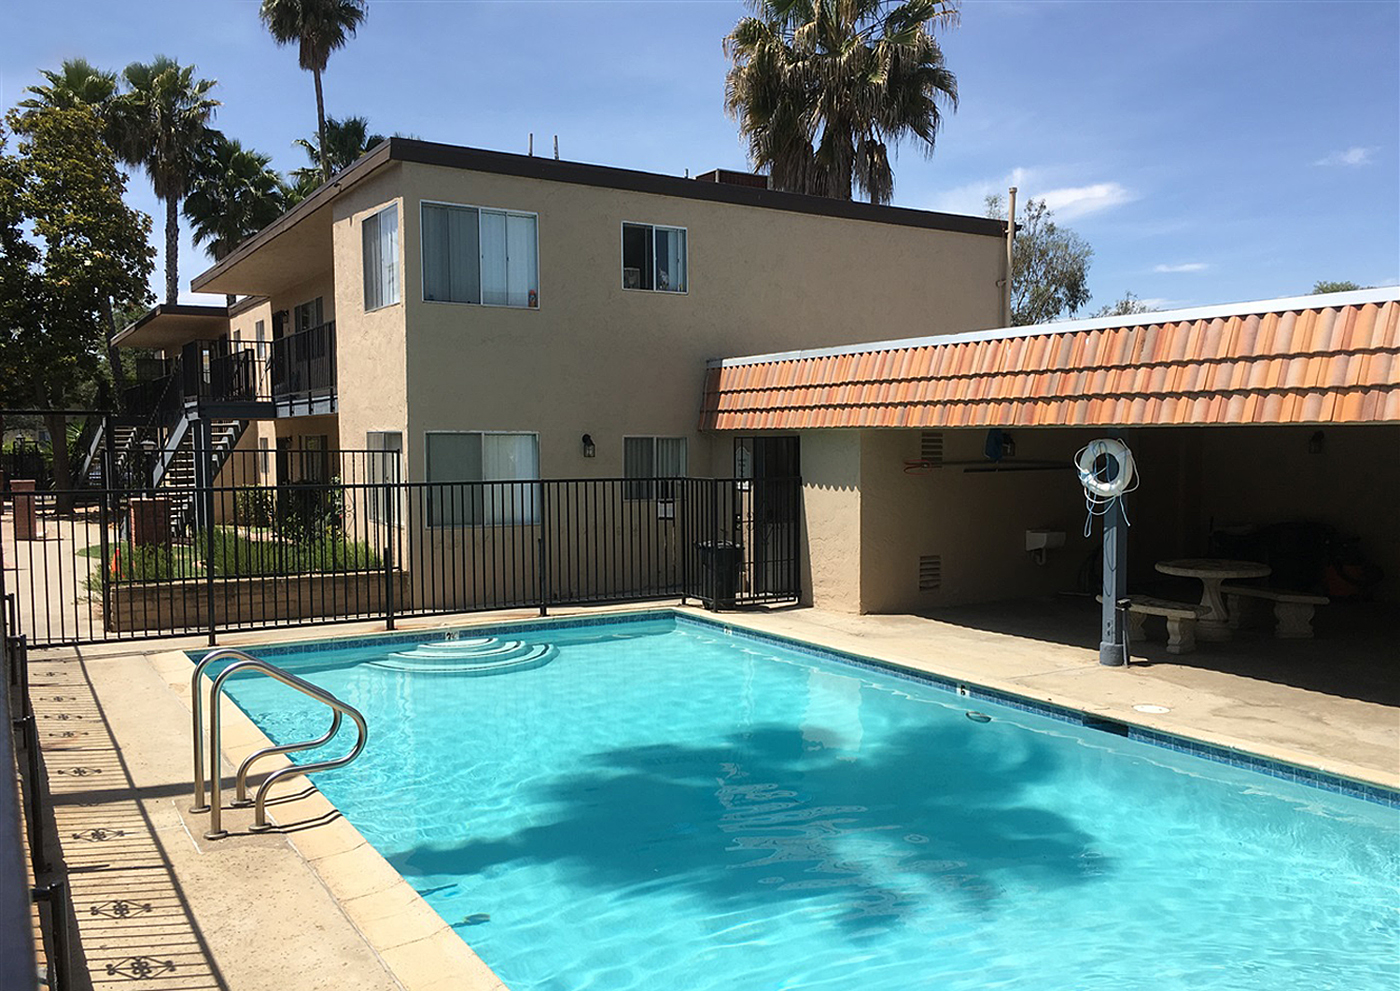 Ramona apartment complex sells for 4m san diego - Apartment complexes san diego ...